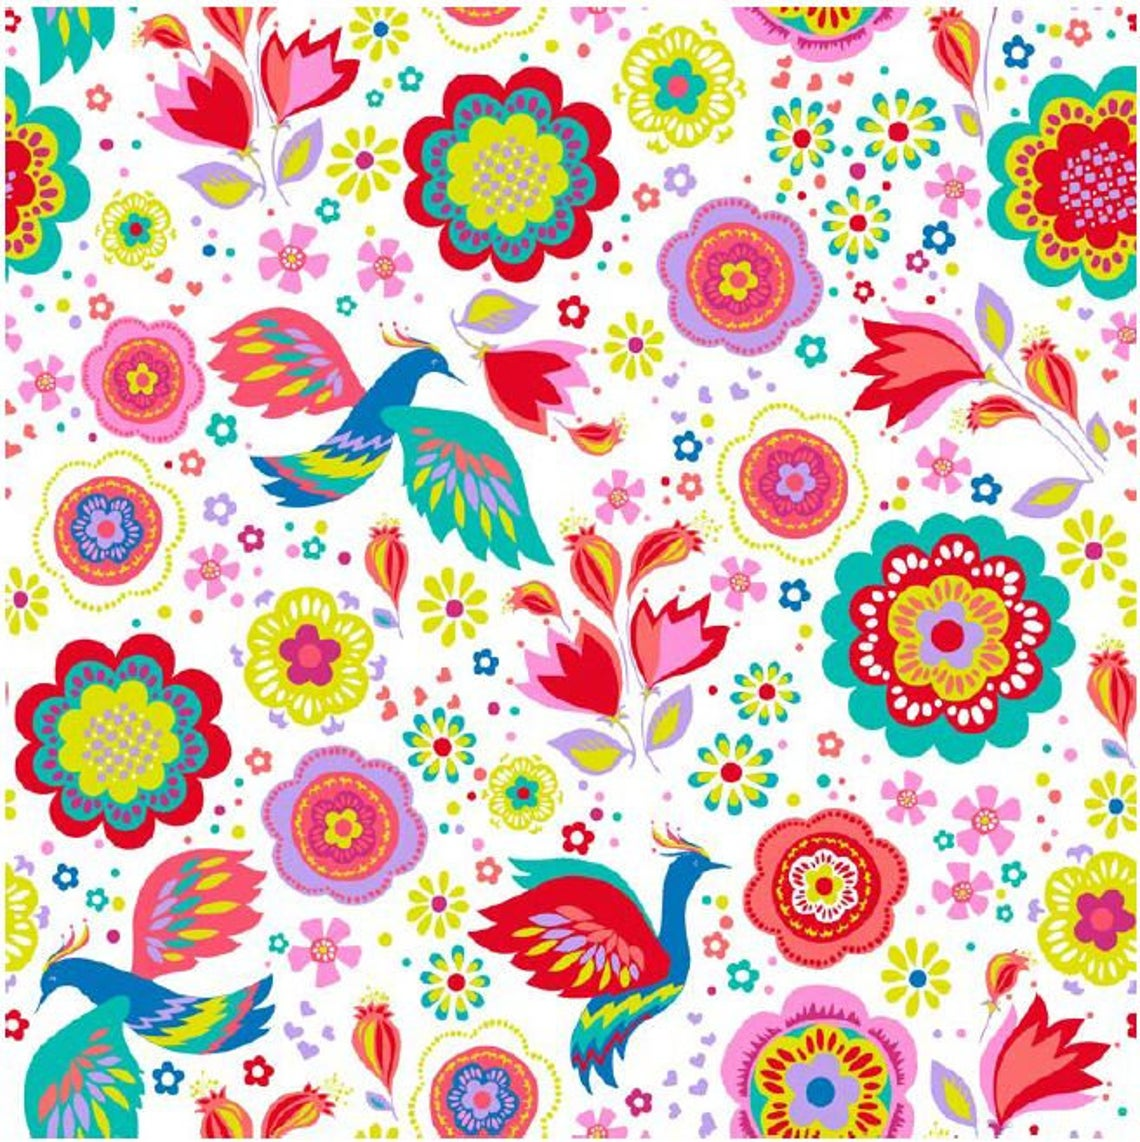 Colourful Retro Flowers Birds Novelty Excellent Quality 100% Cotton Fabric Craft Sewing Clothes Home Decor Extra Wide Per Large Fat Quarter